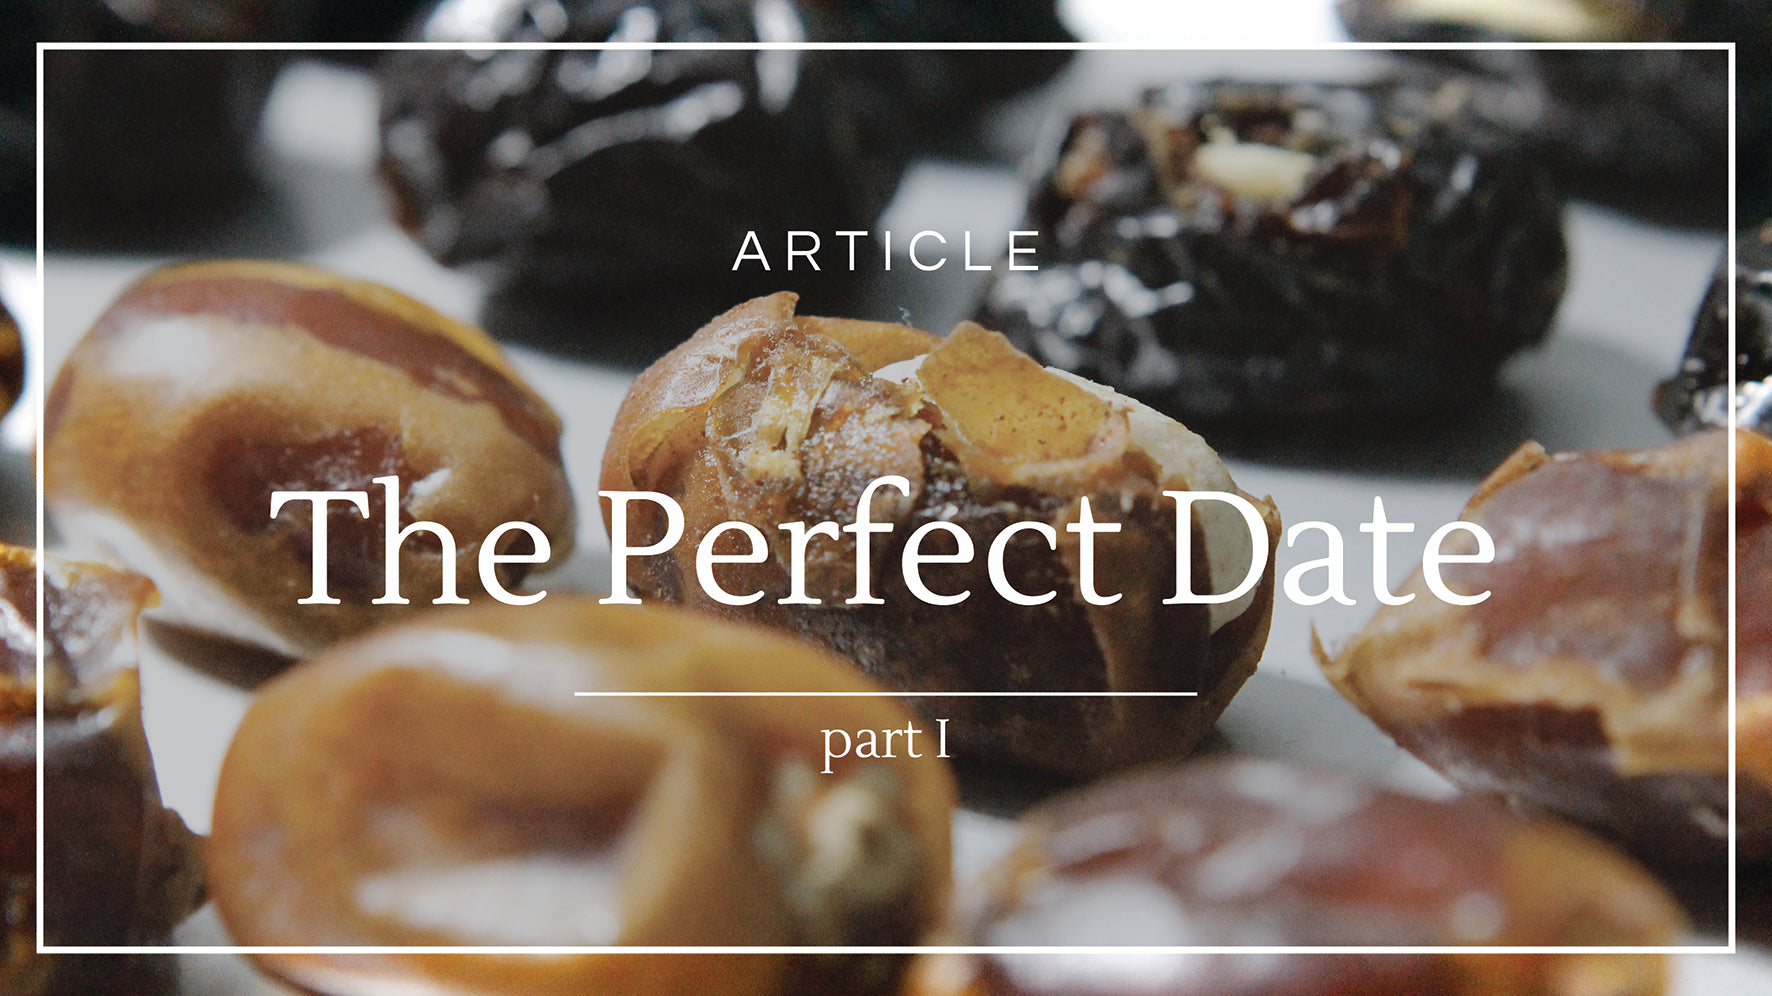 Co Chocolat Blog: The Perfect Date Part 1